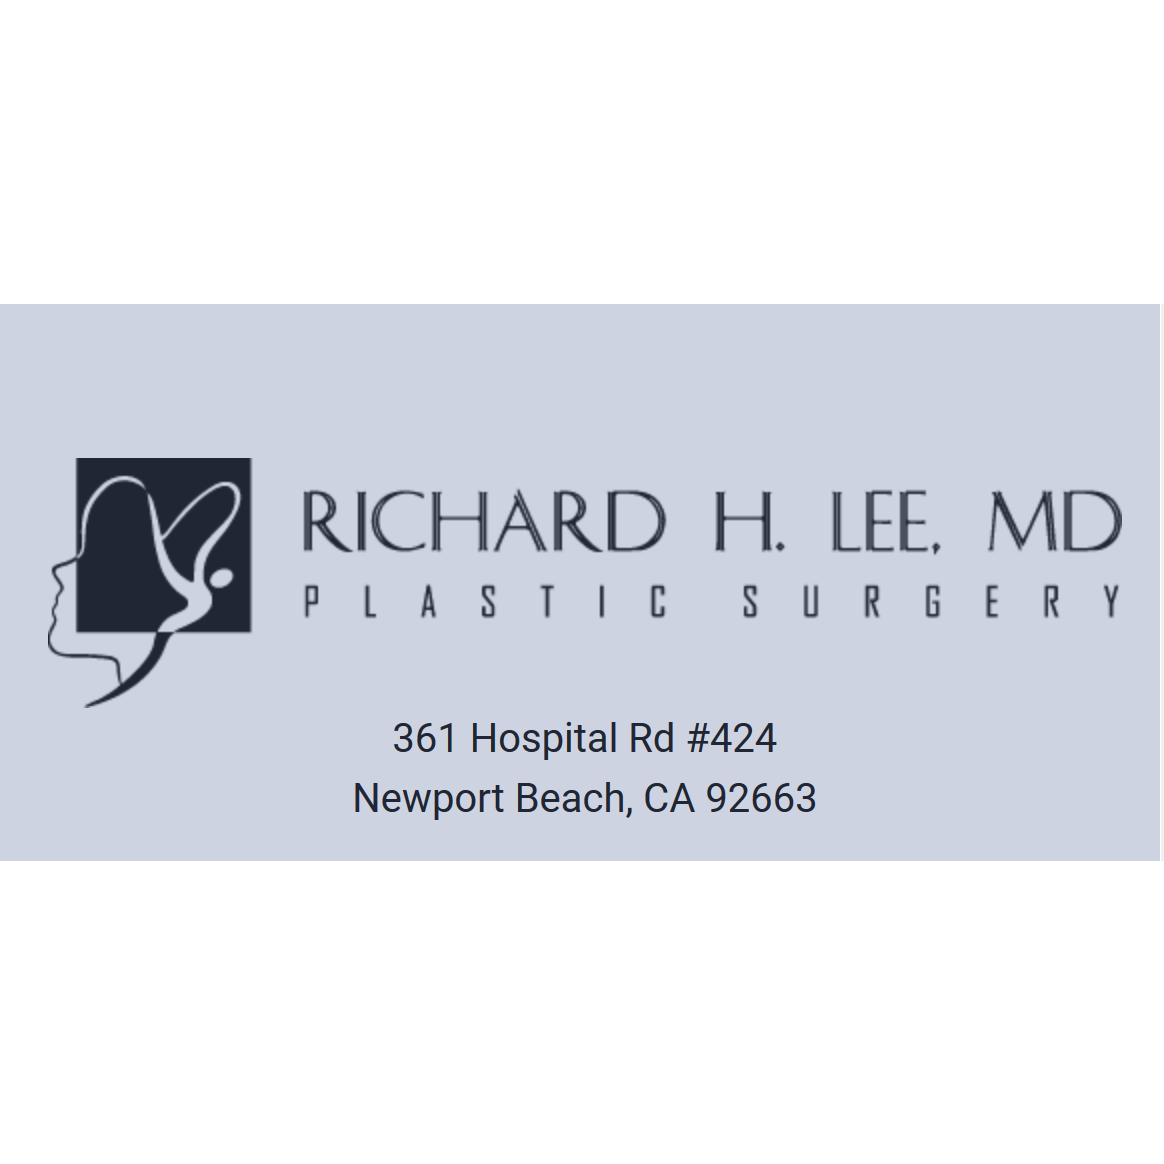 Renaissance Plastic Surgery - Richard H. Lee, MD image 4